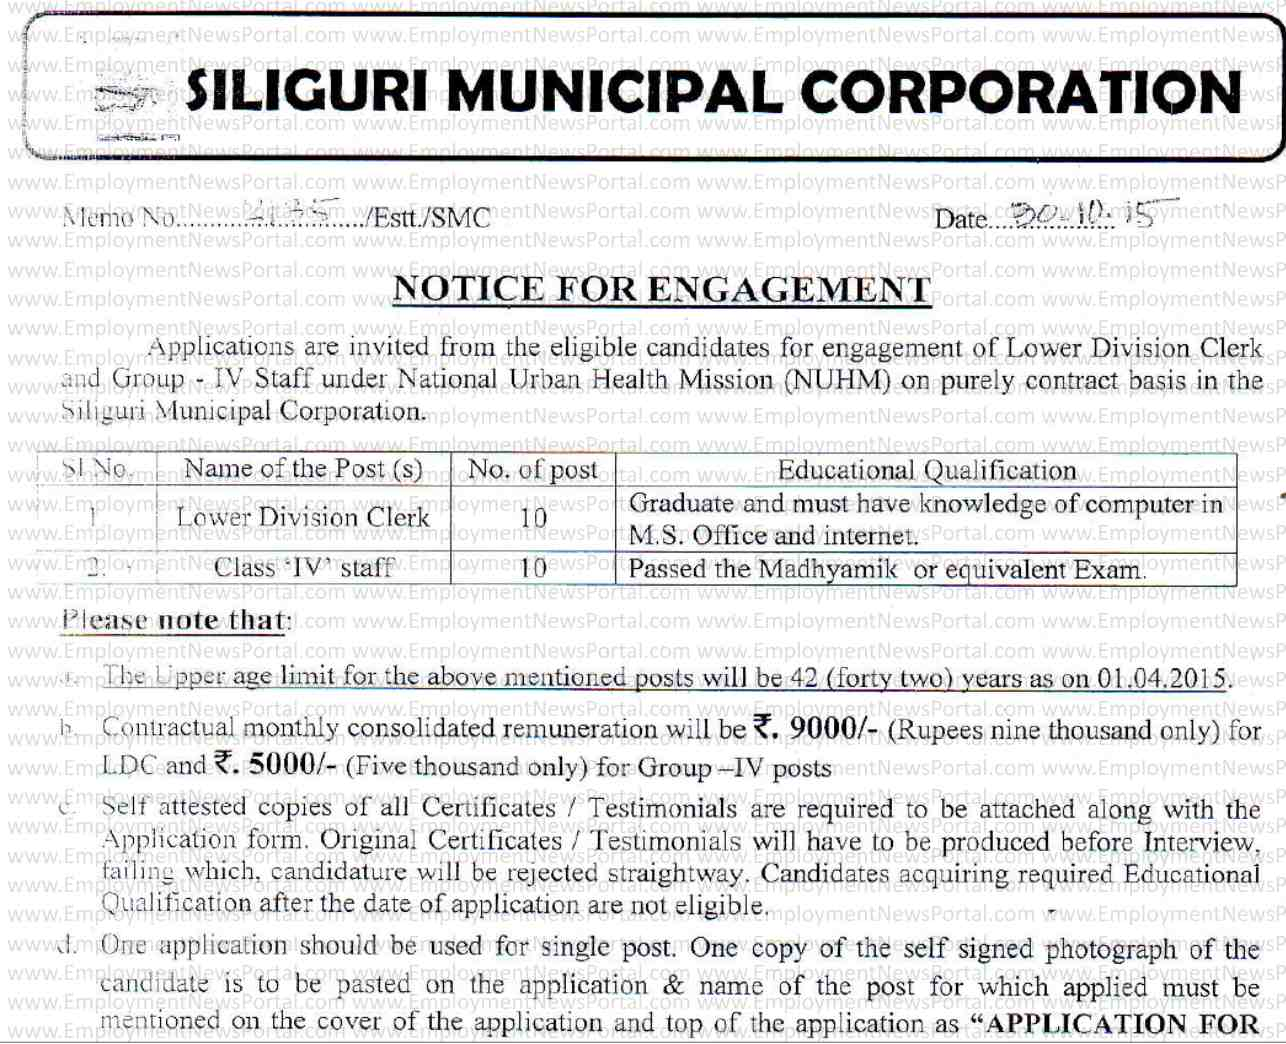 siliguri municipal corporation, recruitmment 2015, clerk jobs, EmploymentNewsPortal